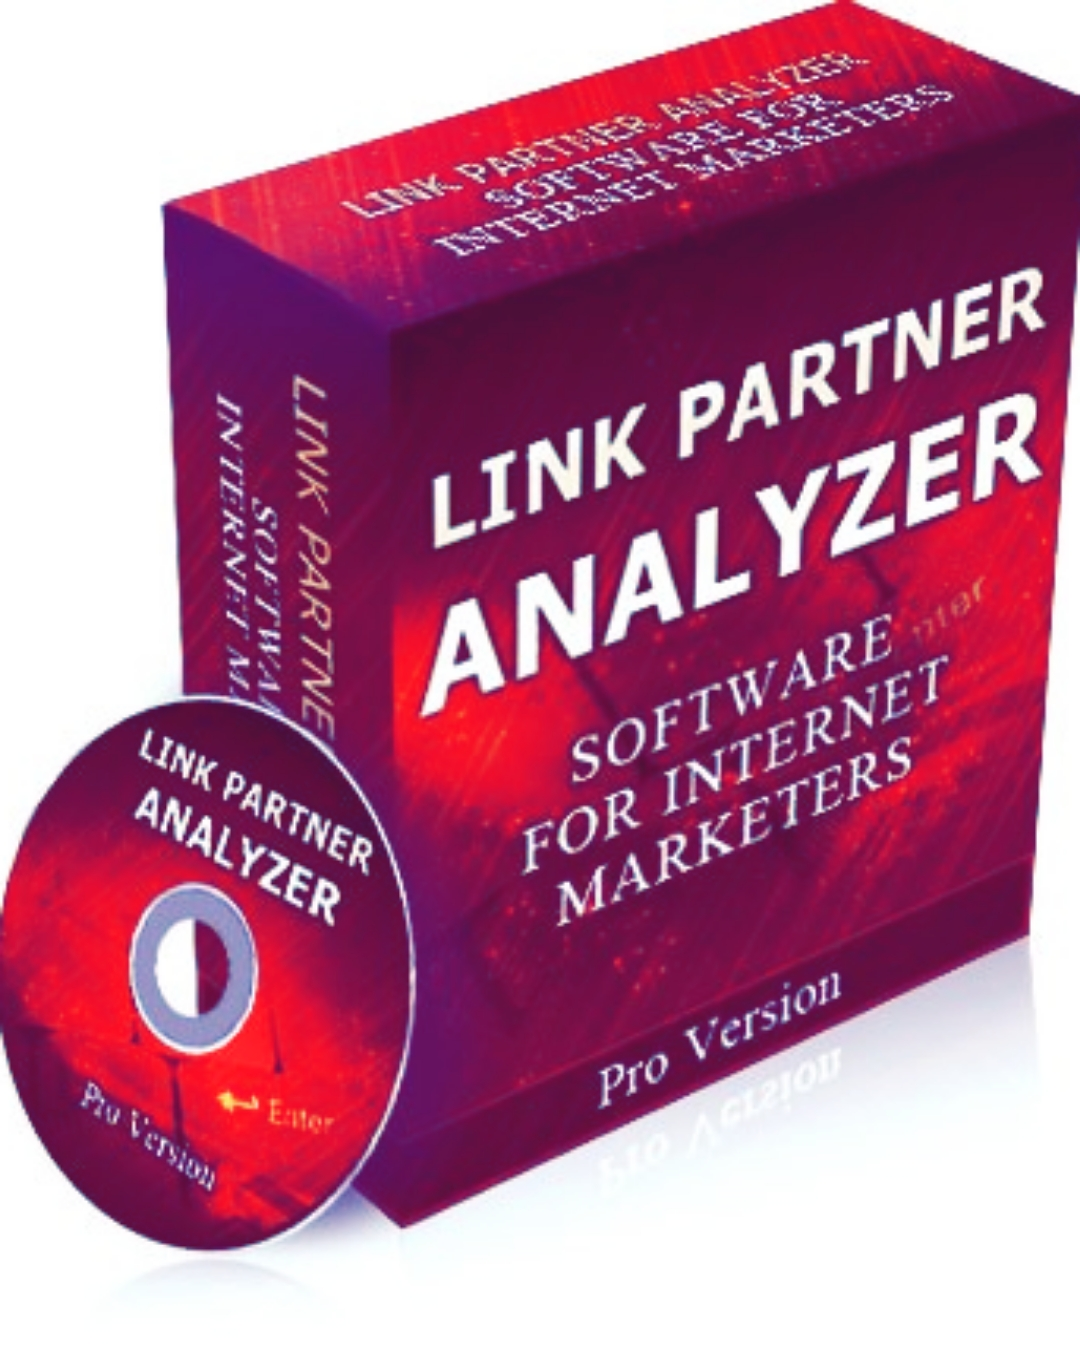 Link Partner Analyzer - Simply enter your own URL address and that of a competitor